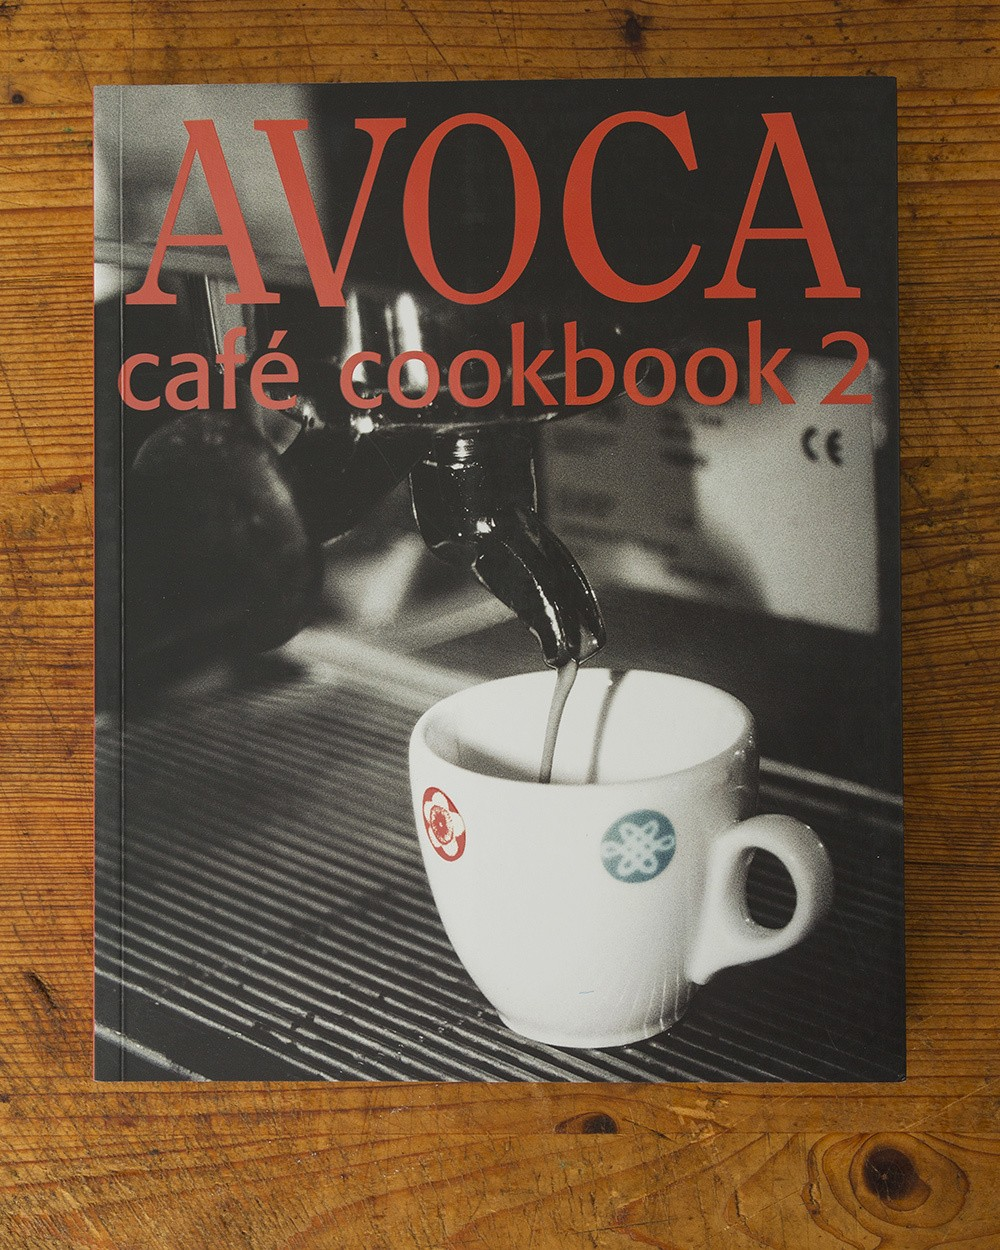 Avoca Cafe Cookbook 2